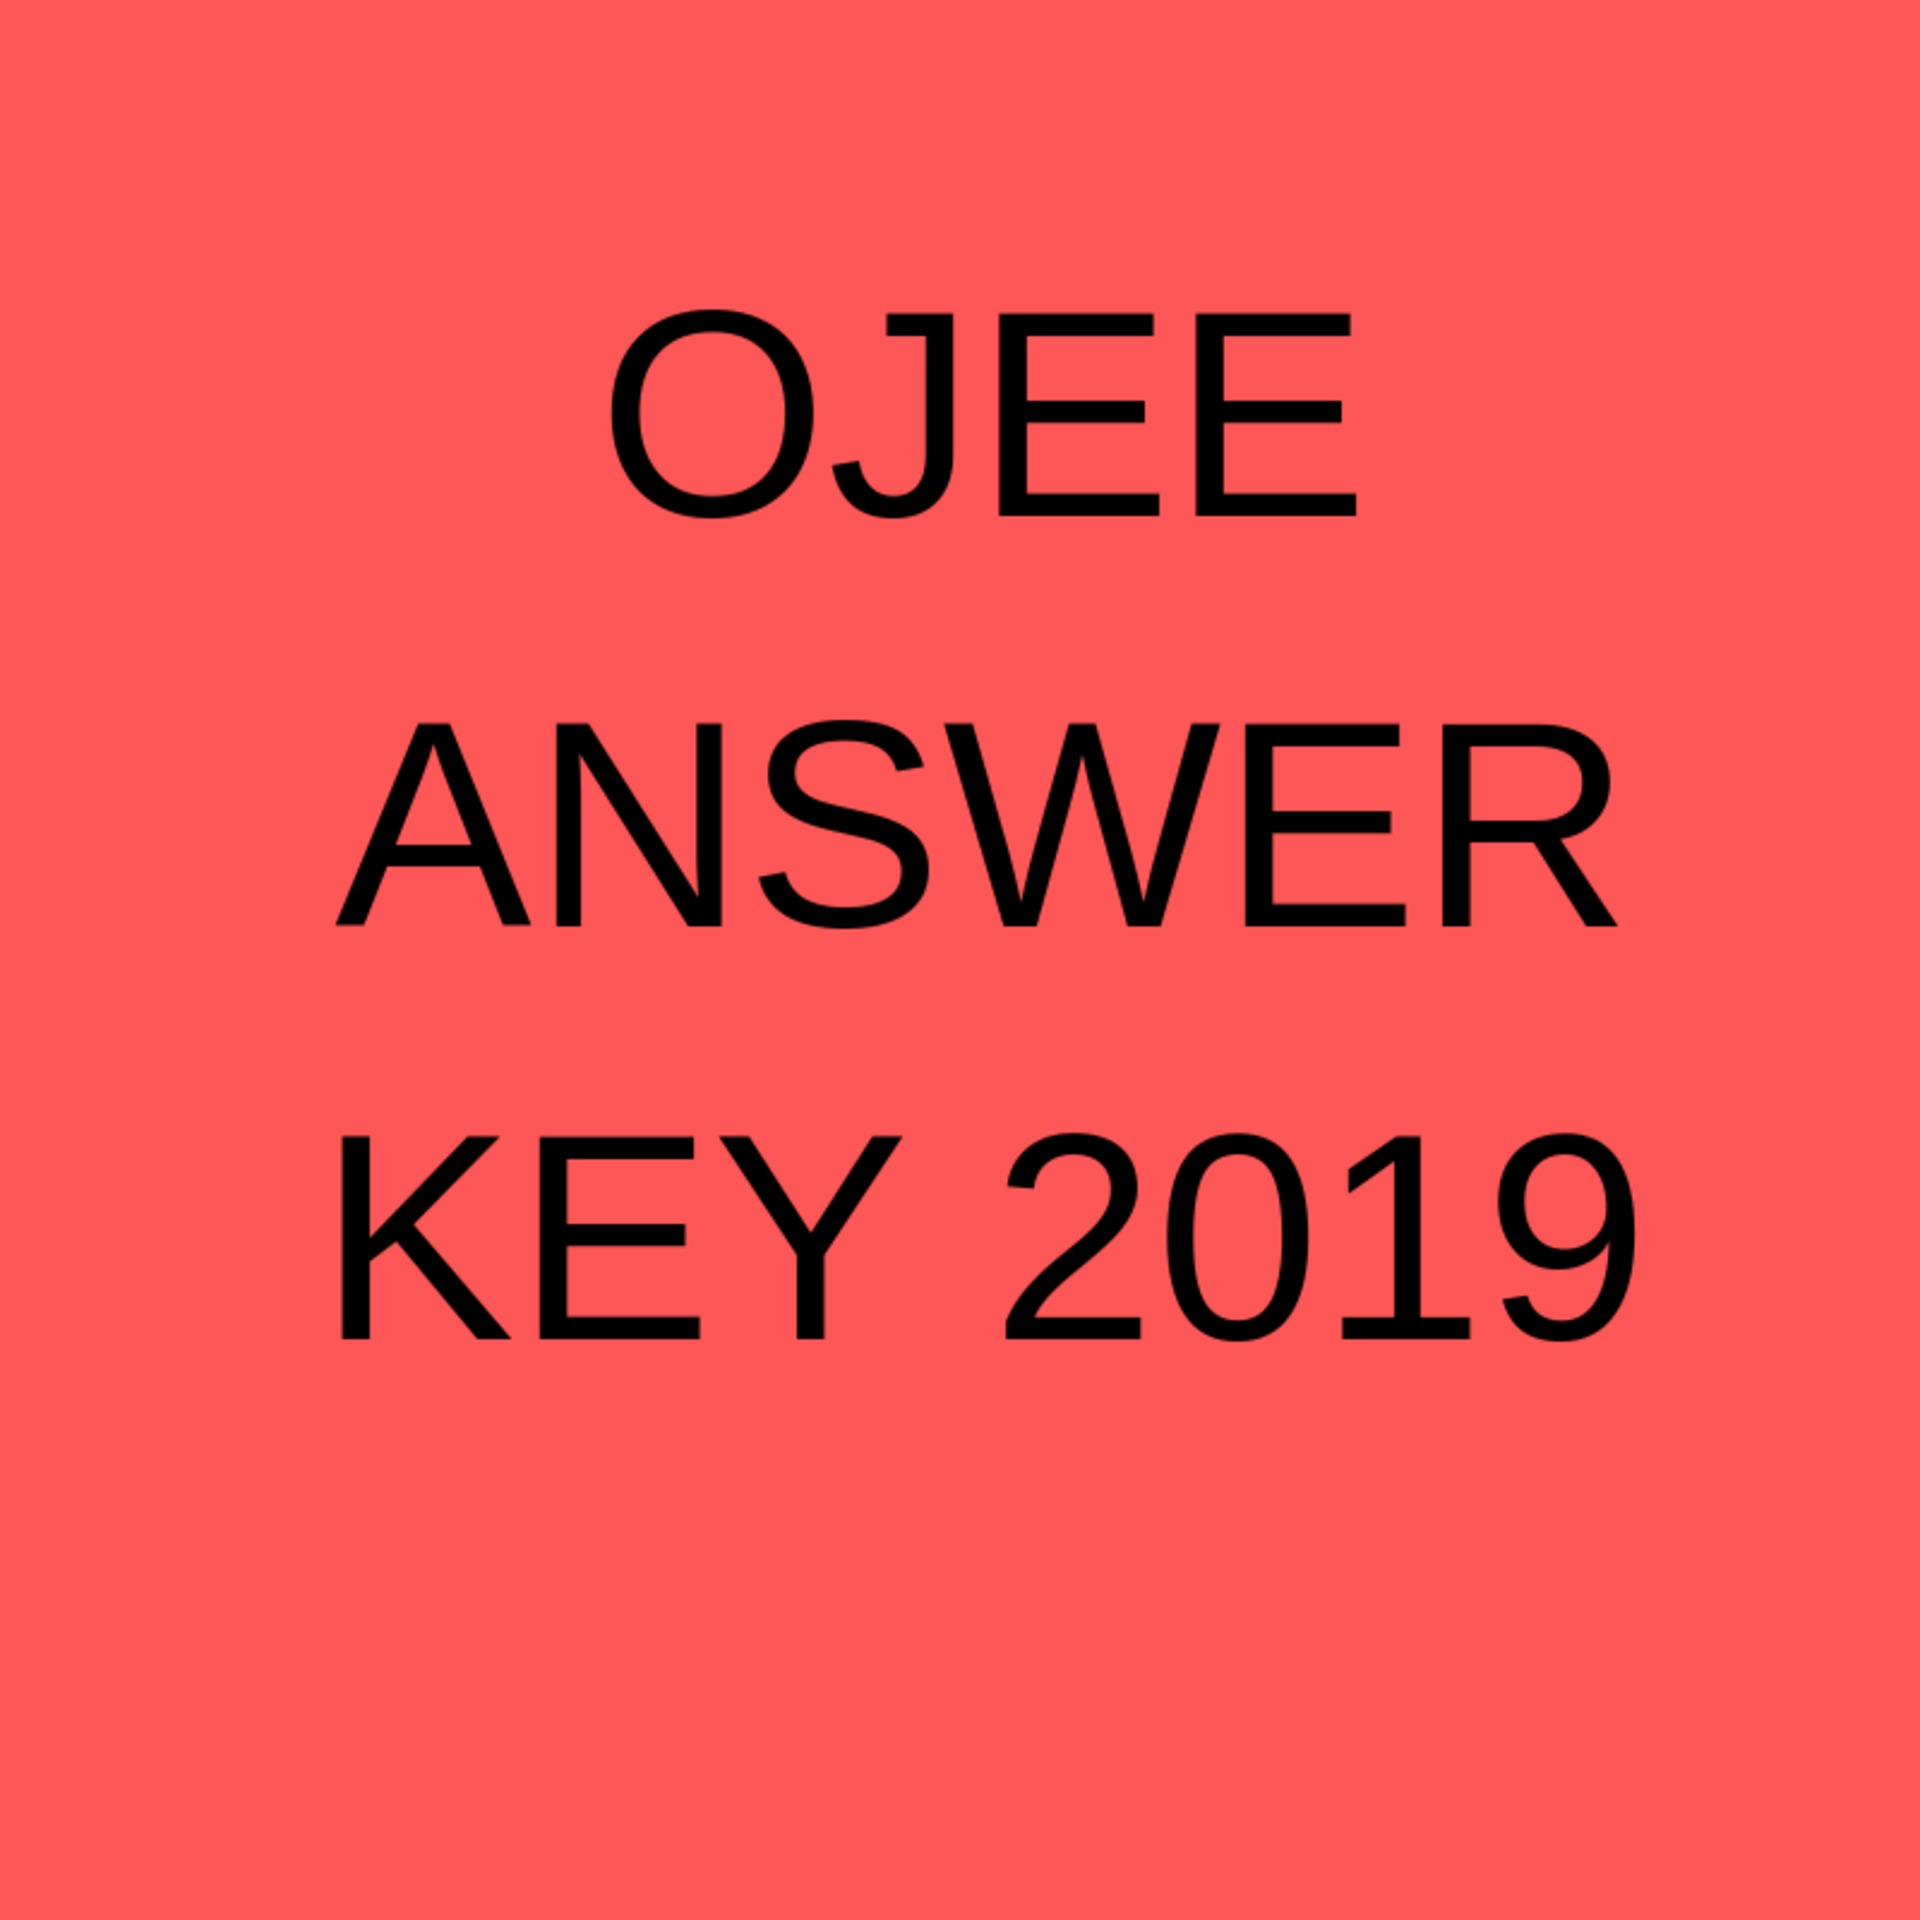 HOW TO DOWNLOAD OJEE ANSWER KEY 2019? image